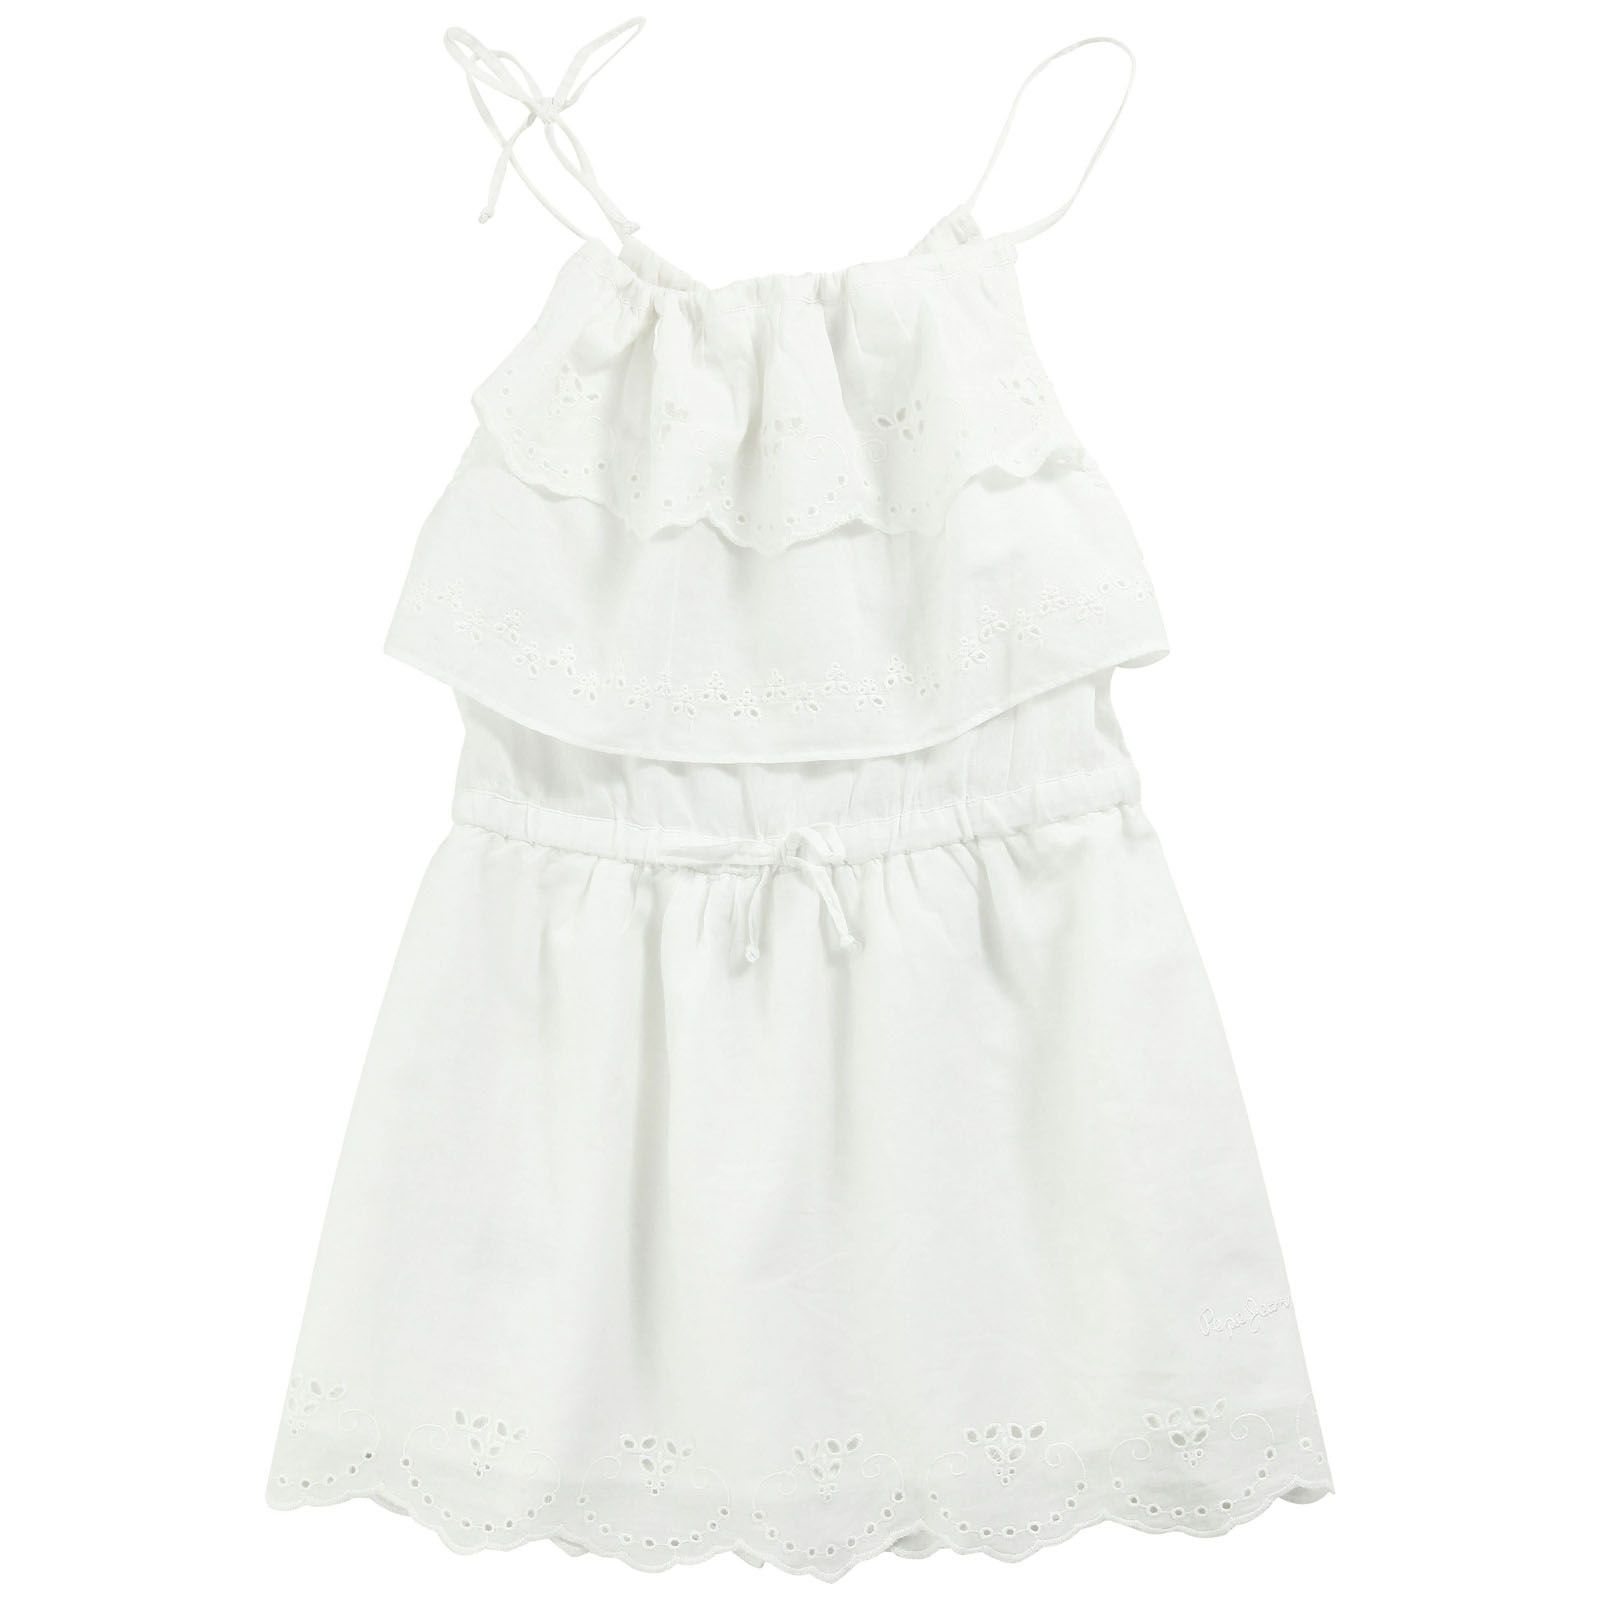 Short dress with lace trims gathered waistband and shoulders